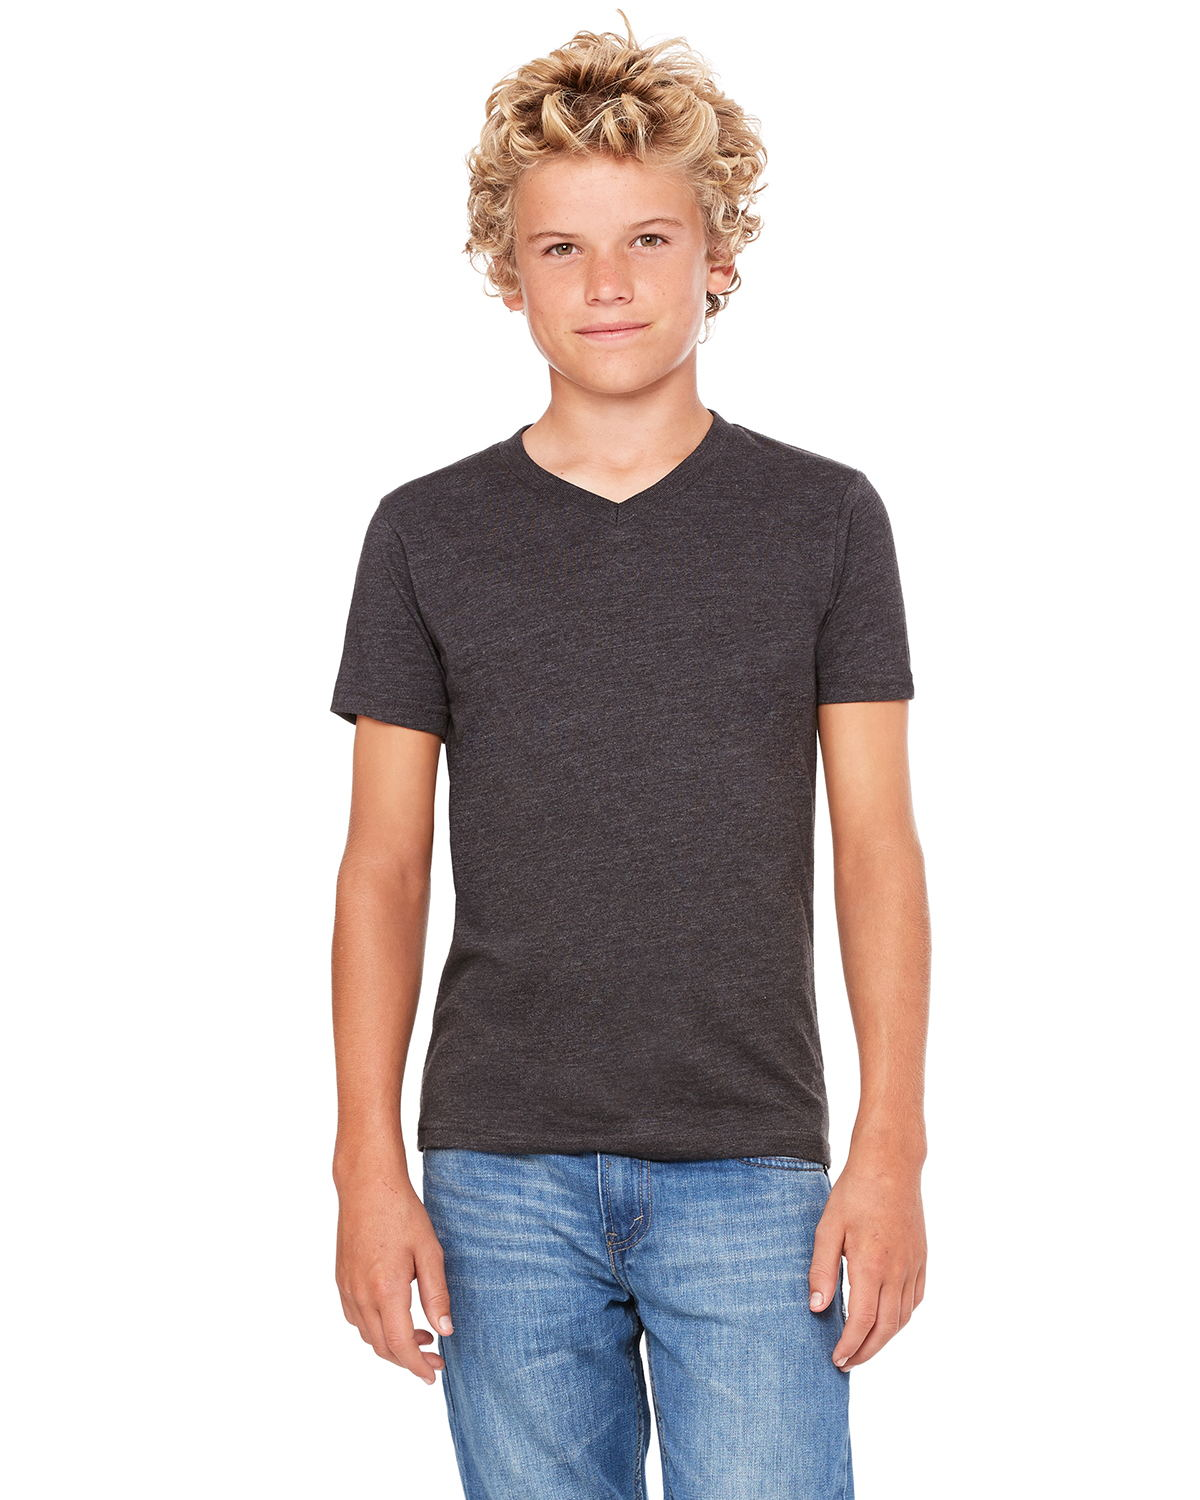 Bella + Canvas 3005Y - Youth V-Neck Jersey Tee